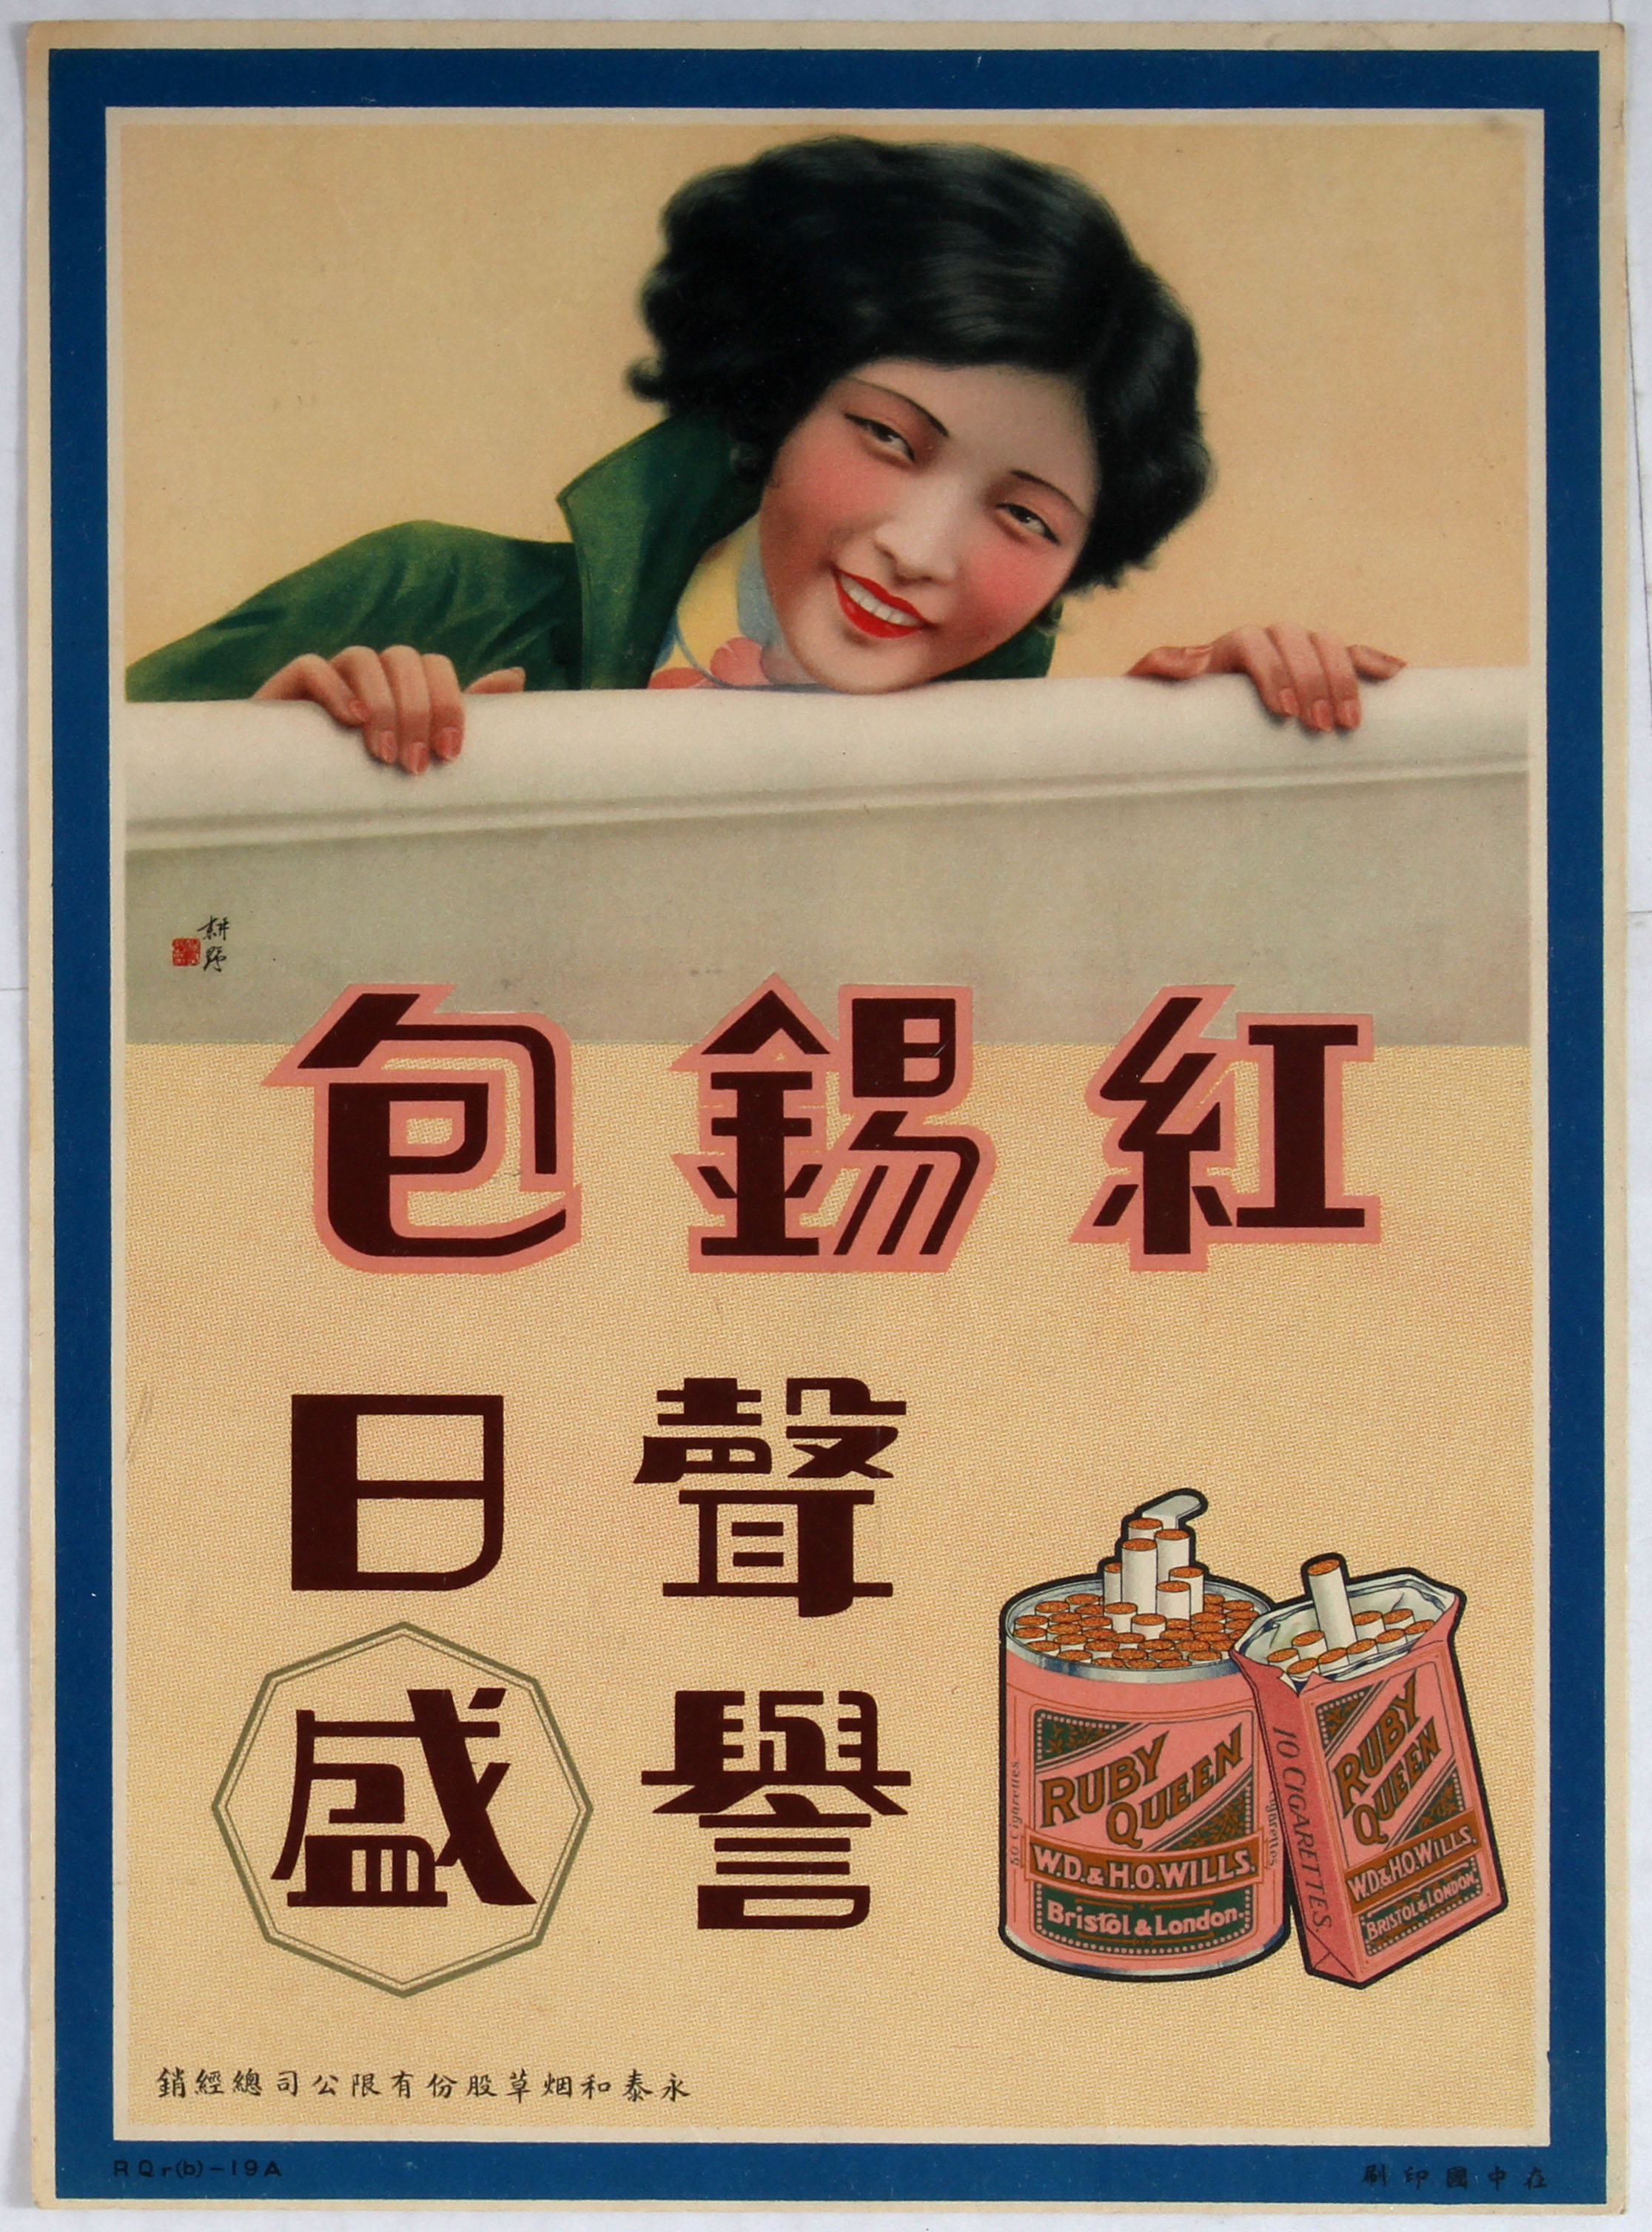 Lot 1204 - Chinese Advertising Poster for the brand of cigarettes Ruby Queen.